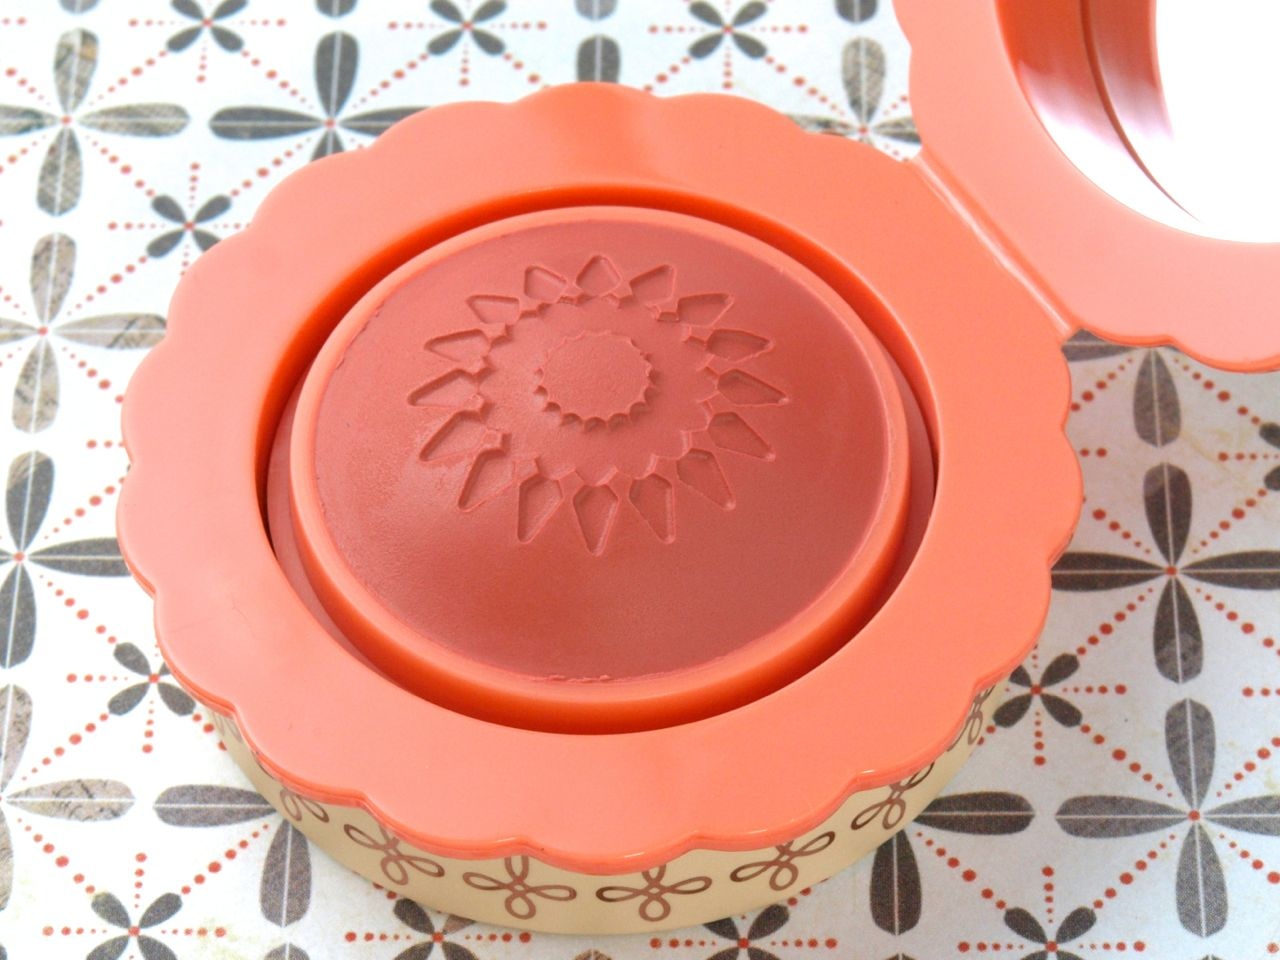 Benefit Majorette Cream-to-Powder Booster Blush: Review and Swatches